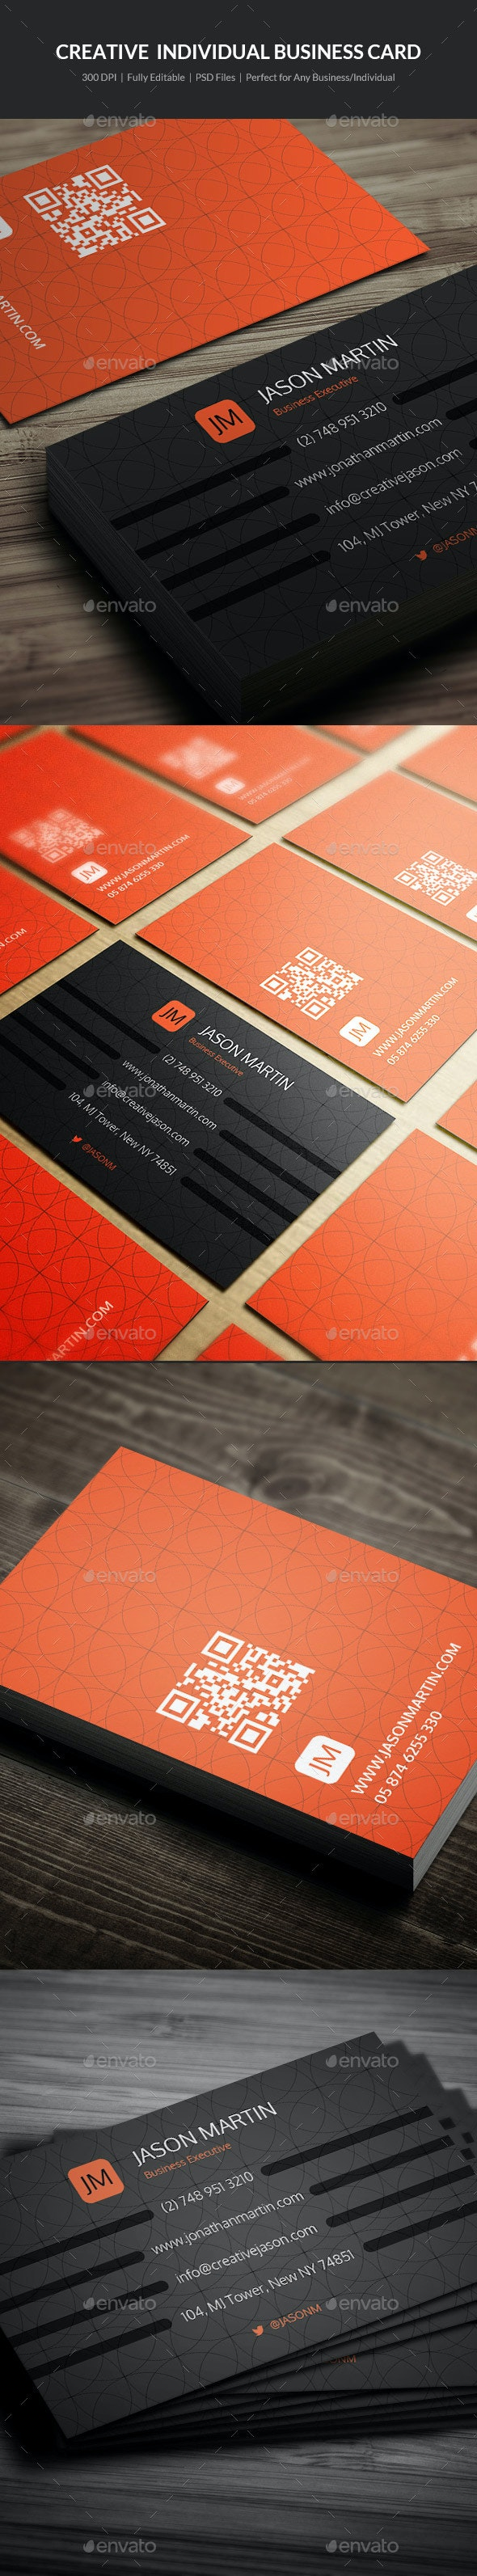 Creative Individual Business Card - 07 - Creative Business Cards